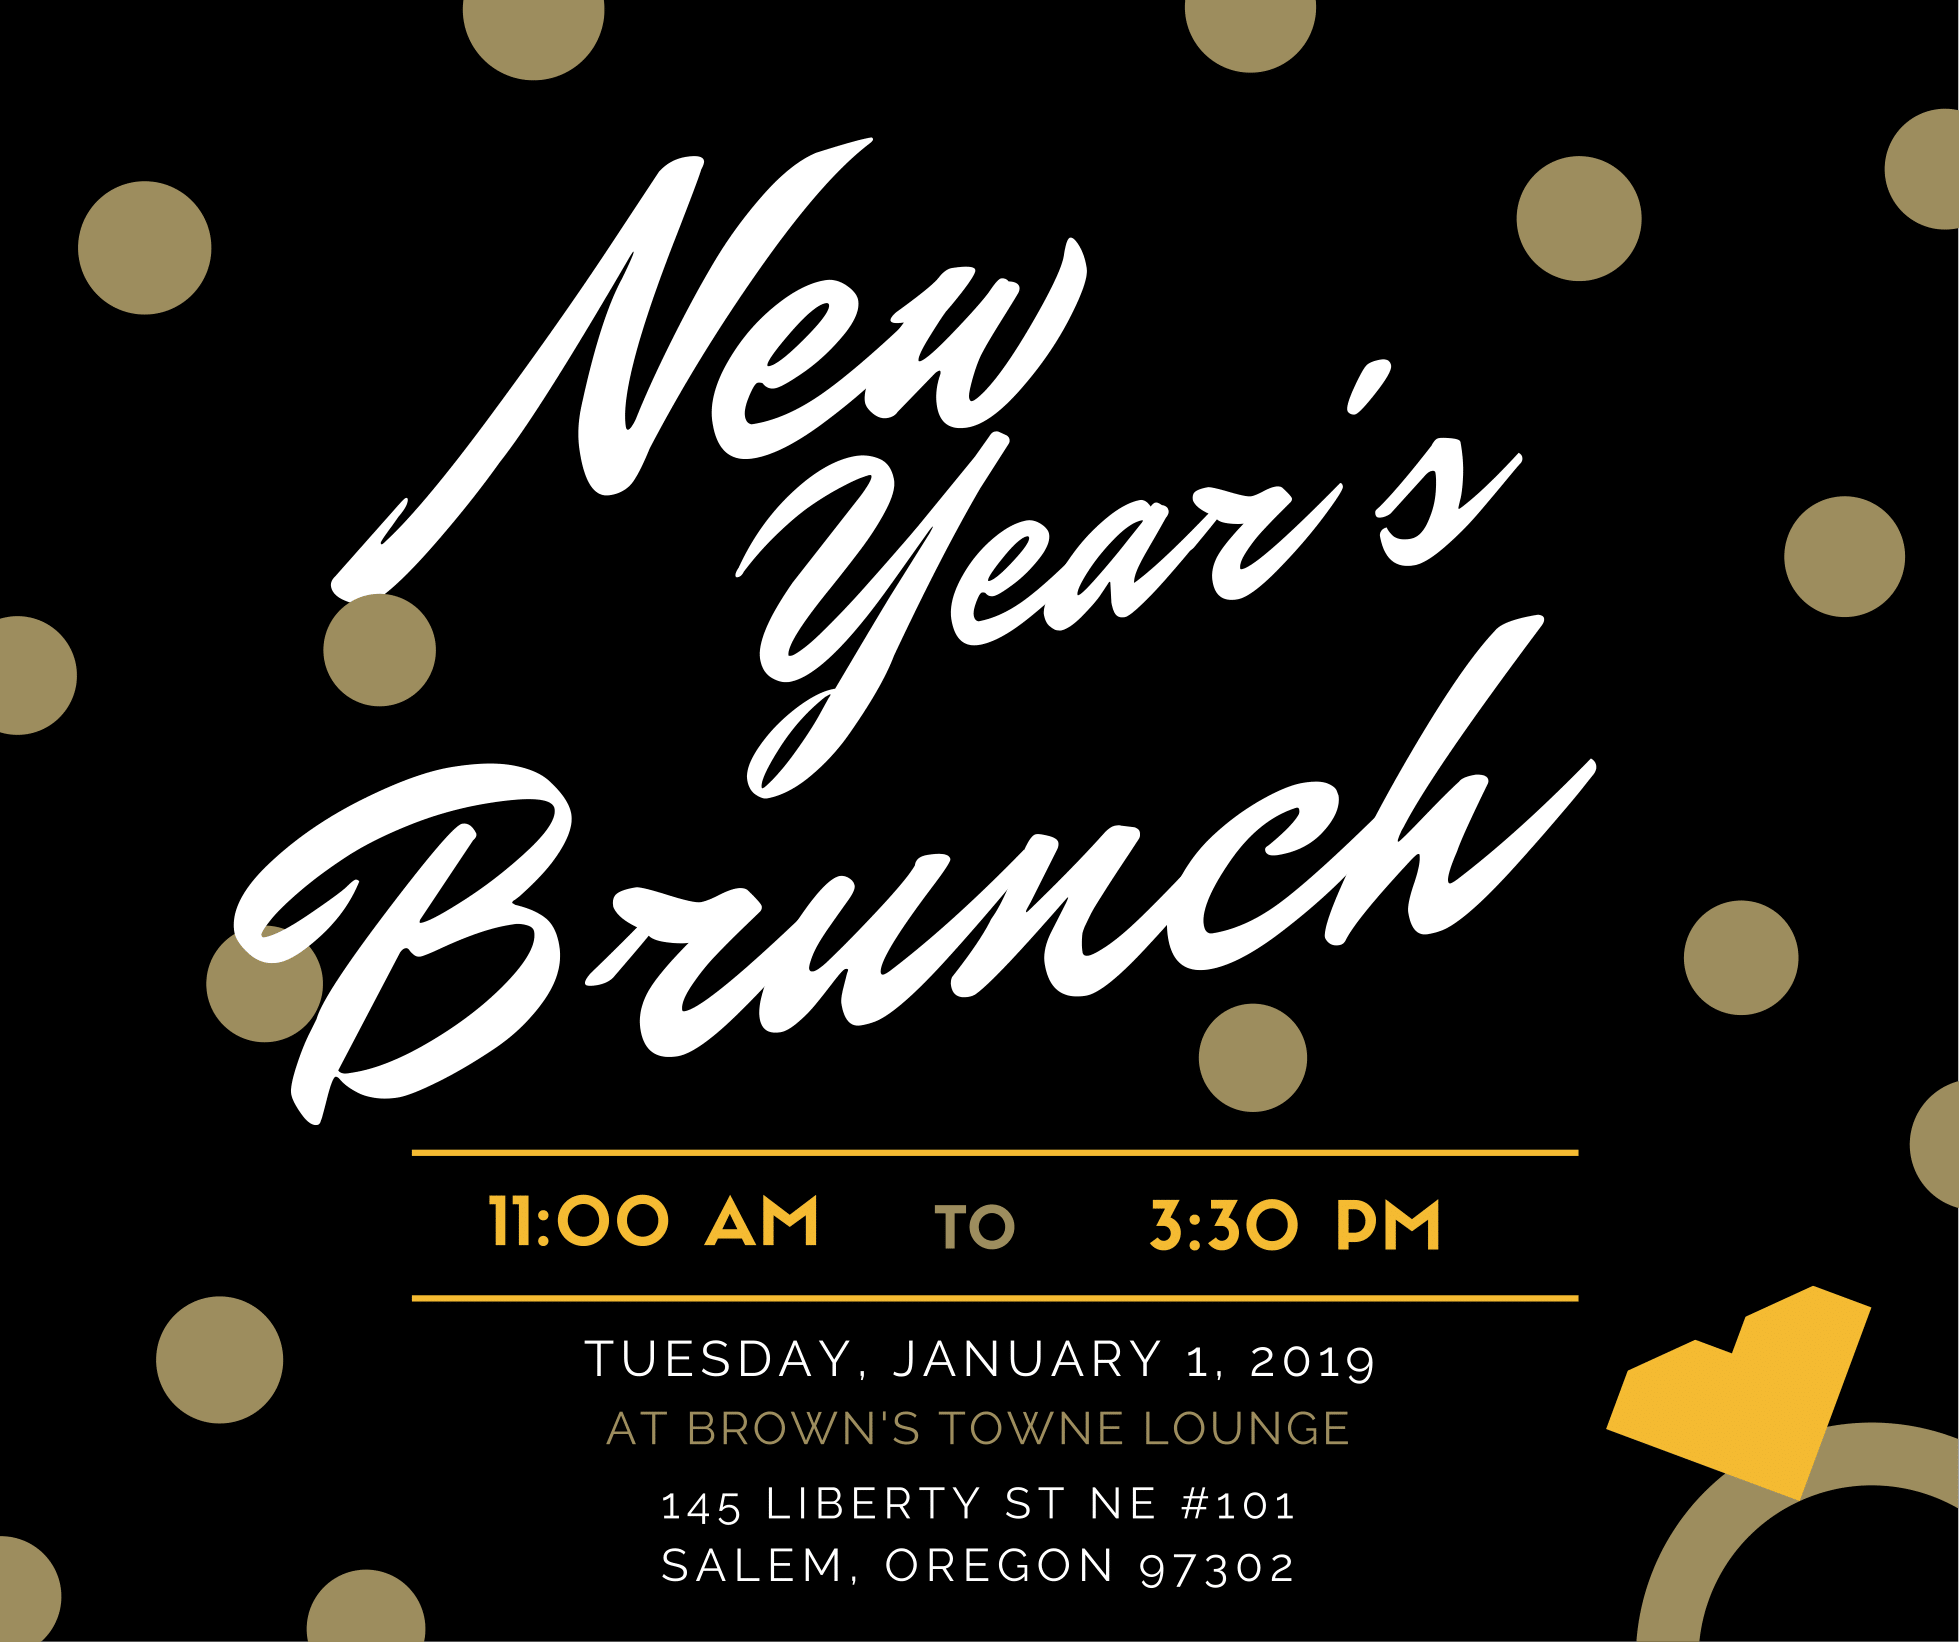 Join us on January 1st, 2019 from 1100 am to 330 pm for our famous New Year's Day Hangover Brunch featuring all your favorite breakfast and lunch bites including omelettes, slow-roasted prime rib, chicken and waffles, huevos rancheros and so much more! Revitalize and continue the celebration with our Bloody Mary and Mimosa specials starting at $5.50. Brunch for Adults 21 and Up. HAPPY New Year from Brown's! Image may contain text